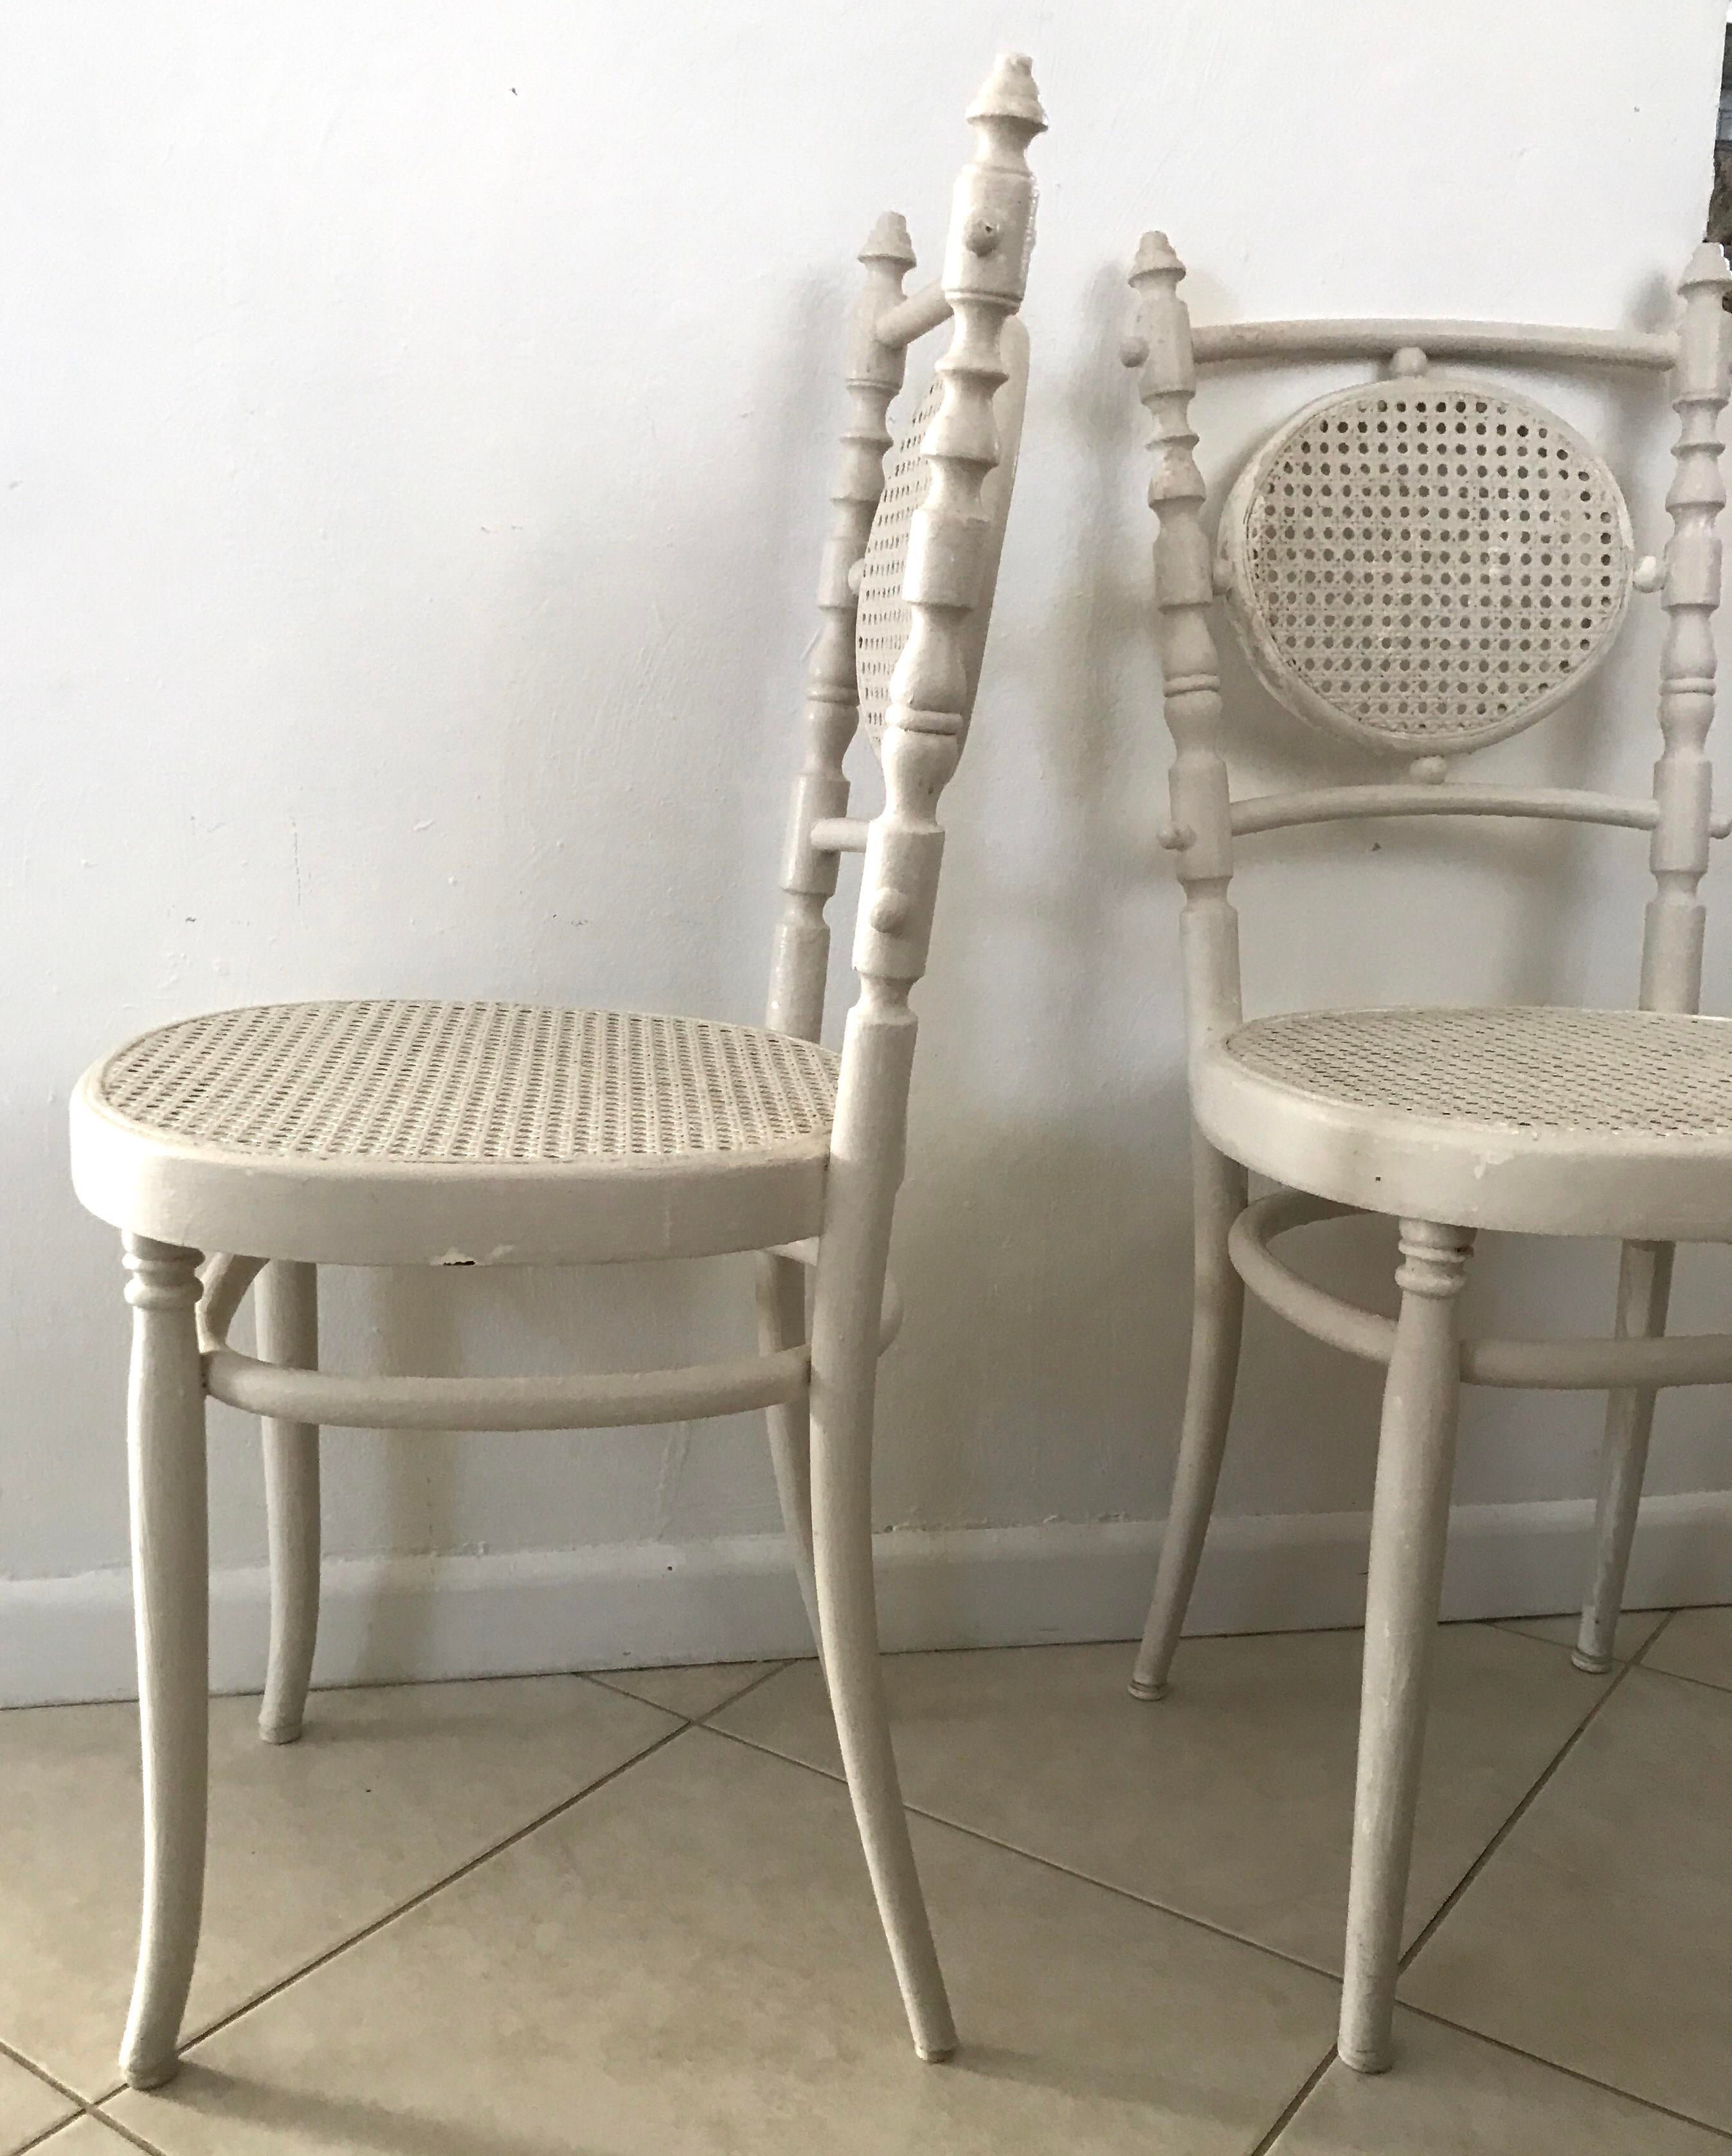 bentwood bistro chair. Antique 1913 Fischel Bentwood French Bistro Chairs - A Pair Image 4 Of 11 Chair